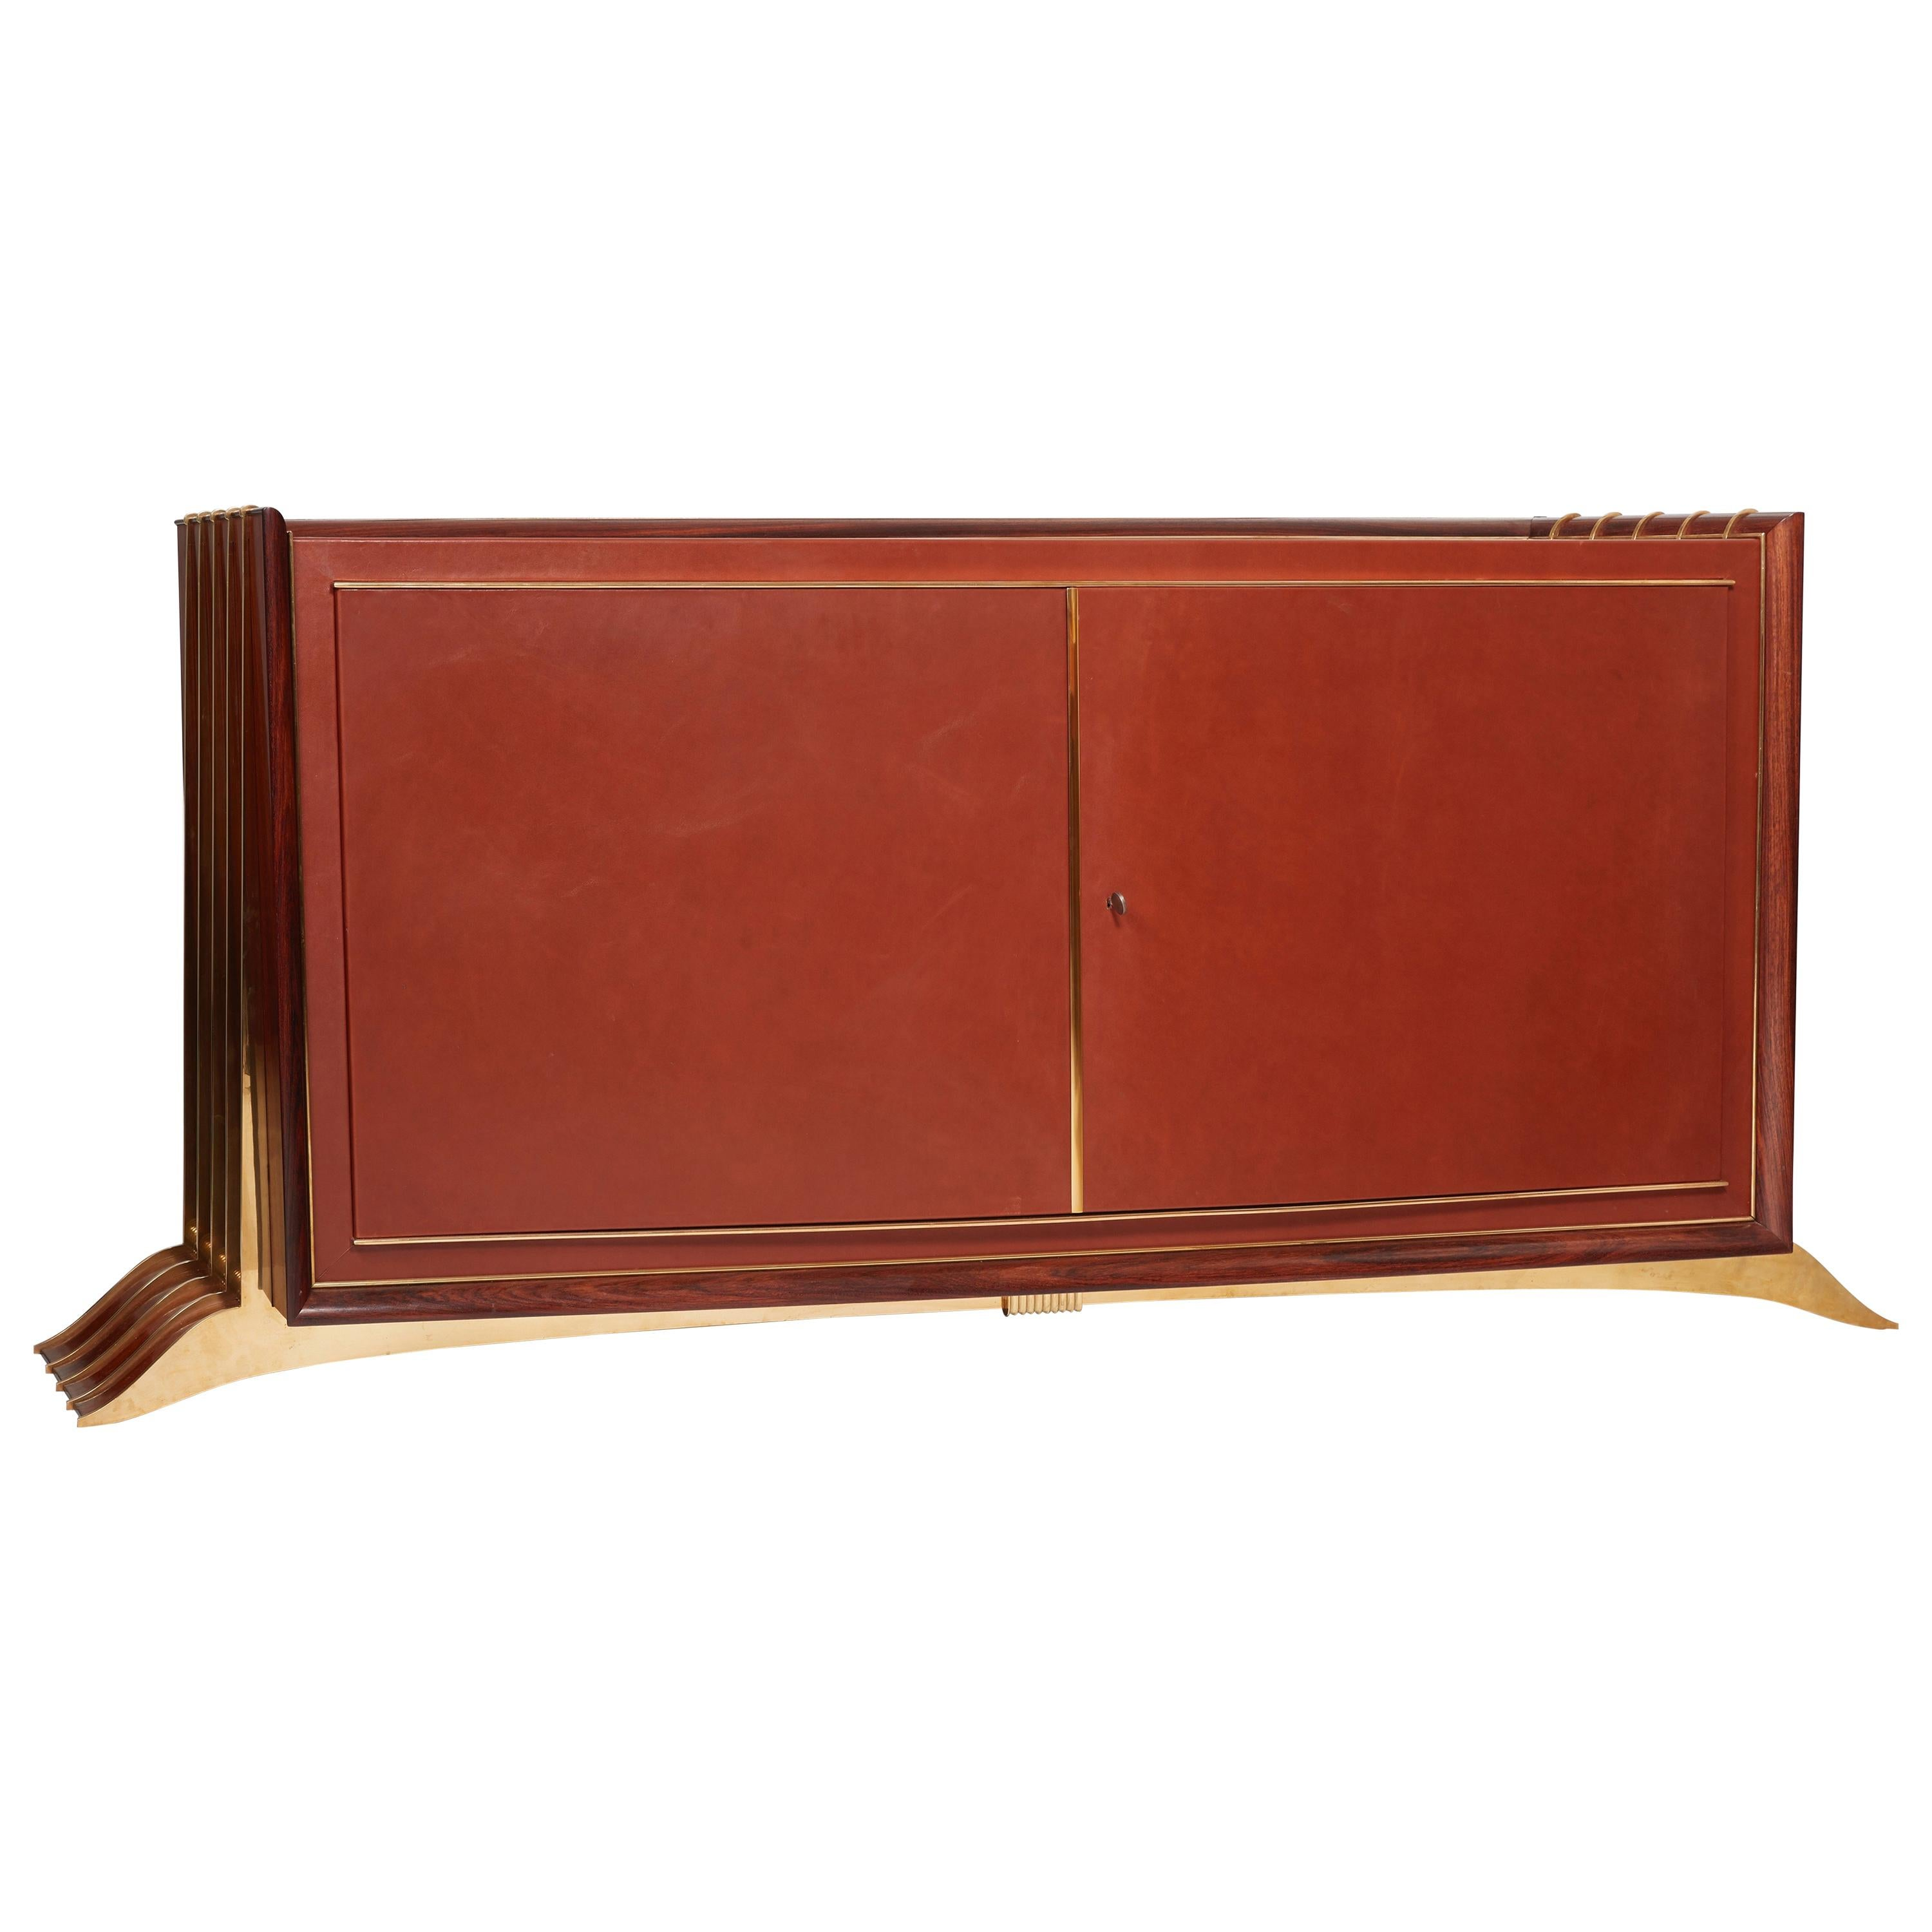 Maurice and Léon Jallot, Mahogany Cabinet Opening by Two Doors, circa 1936